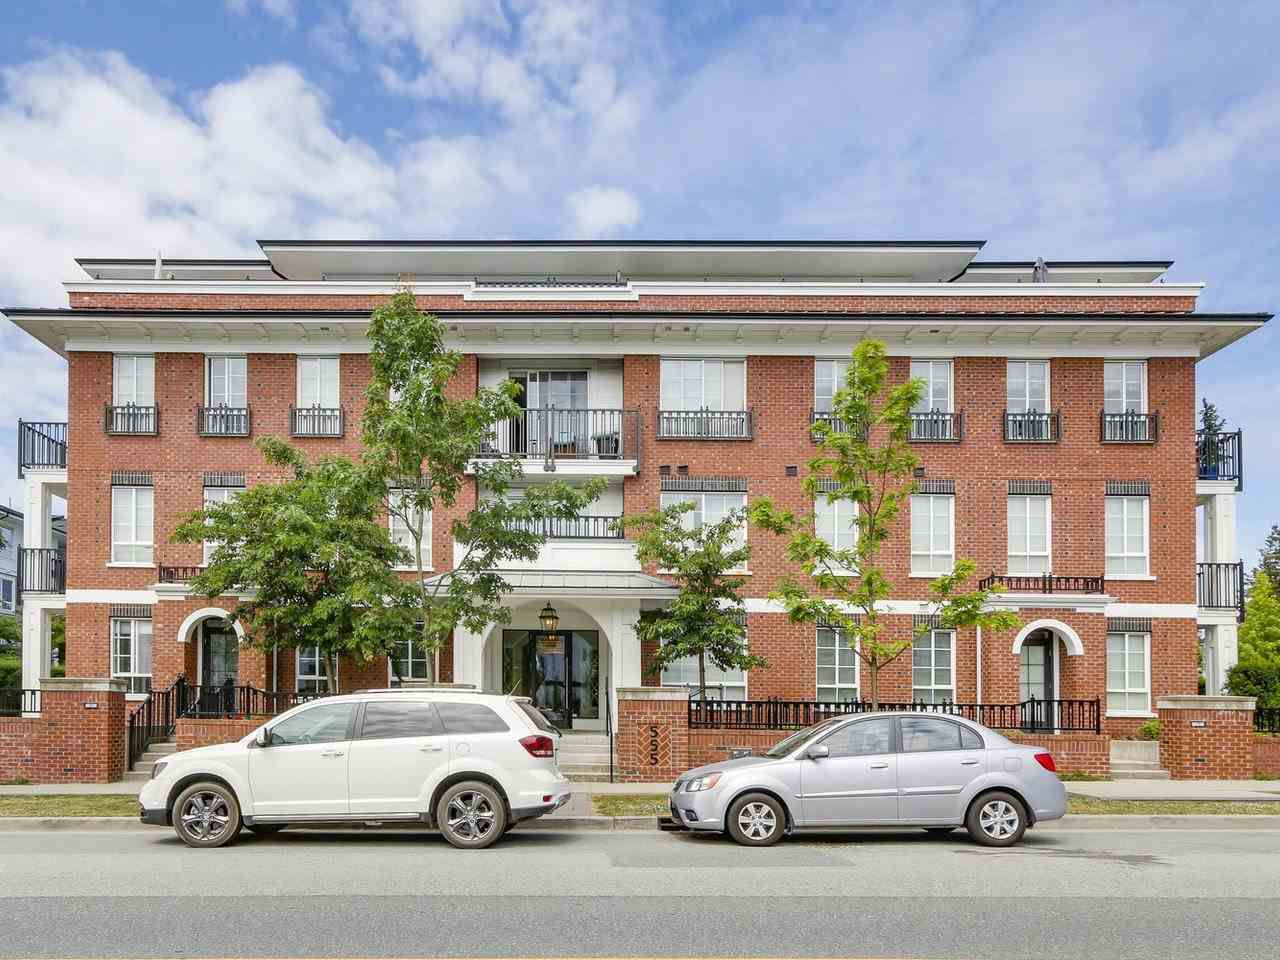 """Main Photo: 108 555 FOSTER Avenue in Coquitlam: Coquitlam West Condo for sale in """"FOSTER"""" : MLS®# R2186294"""